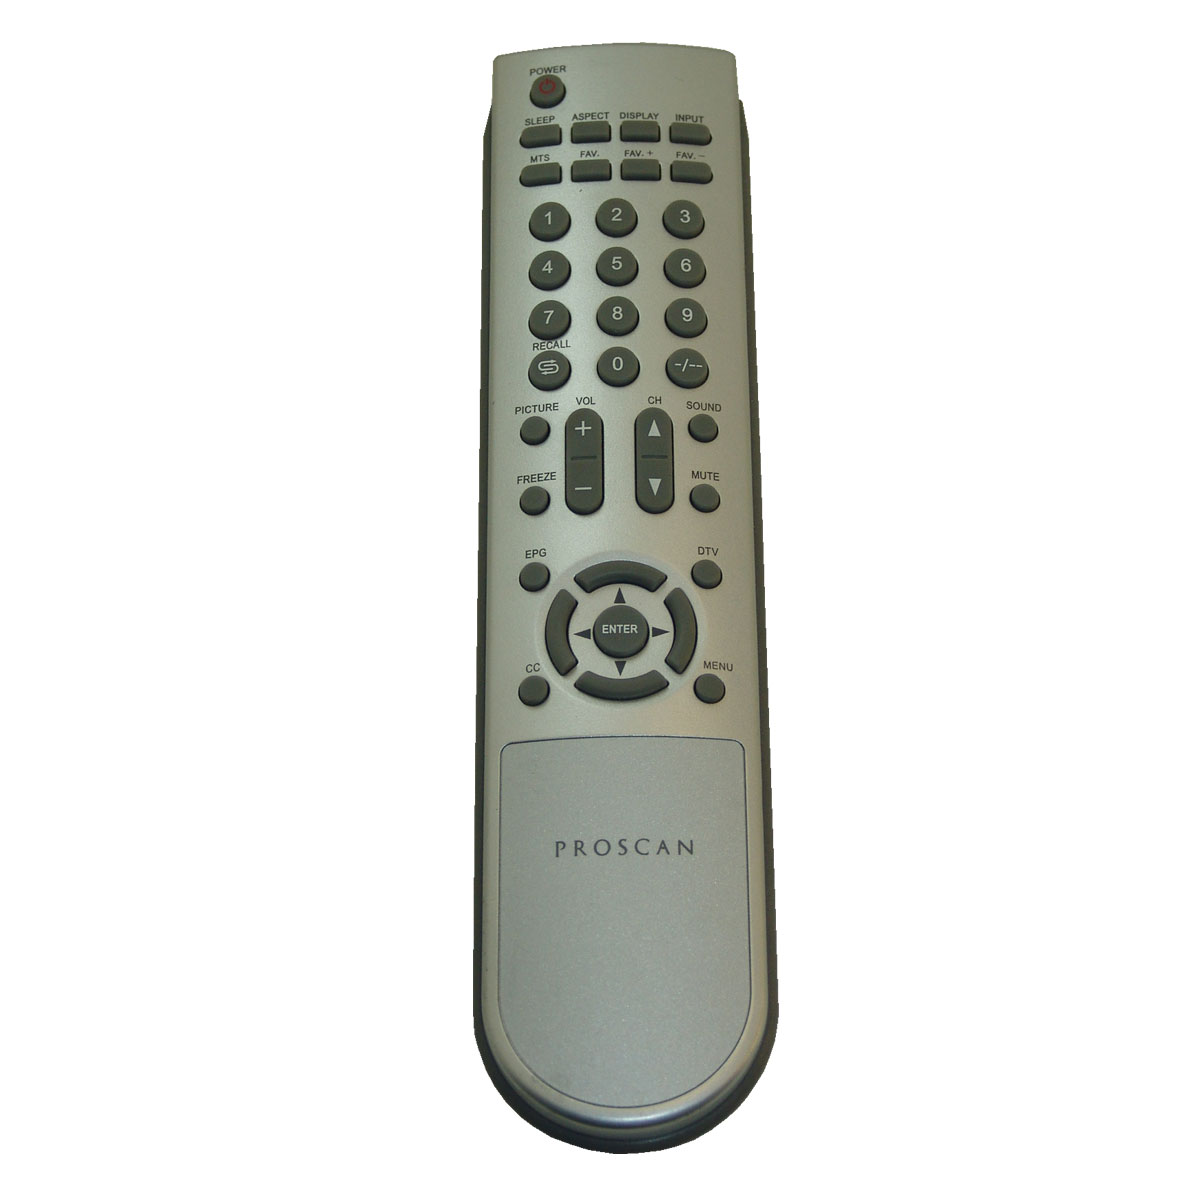 PROSCAN Replacement Remote Control for